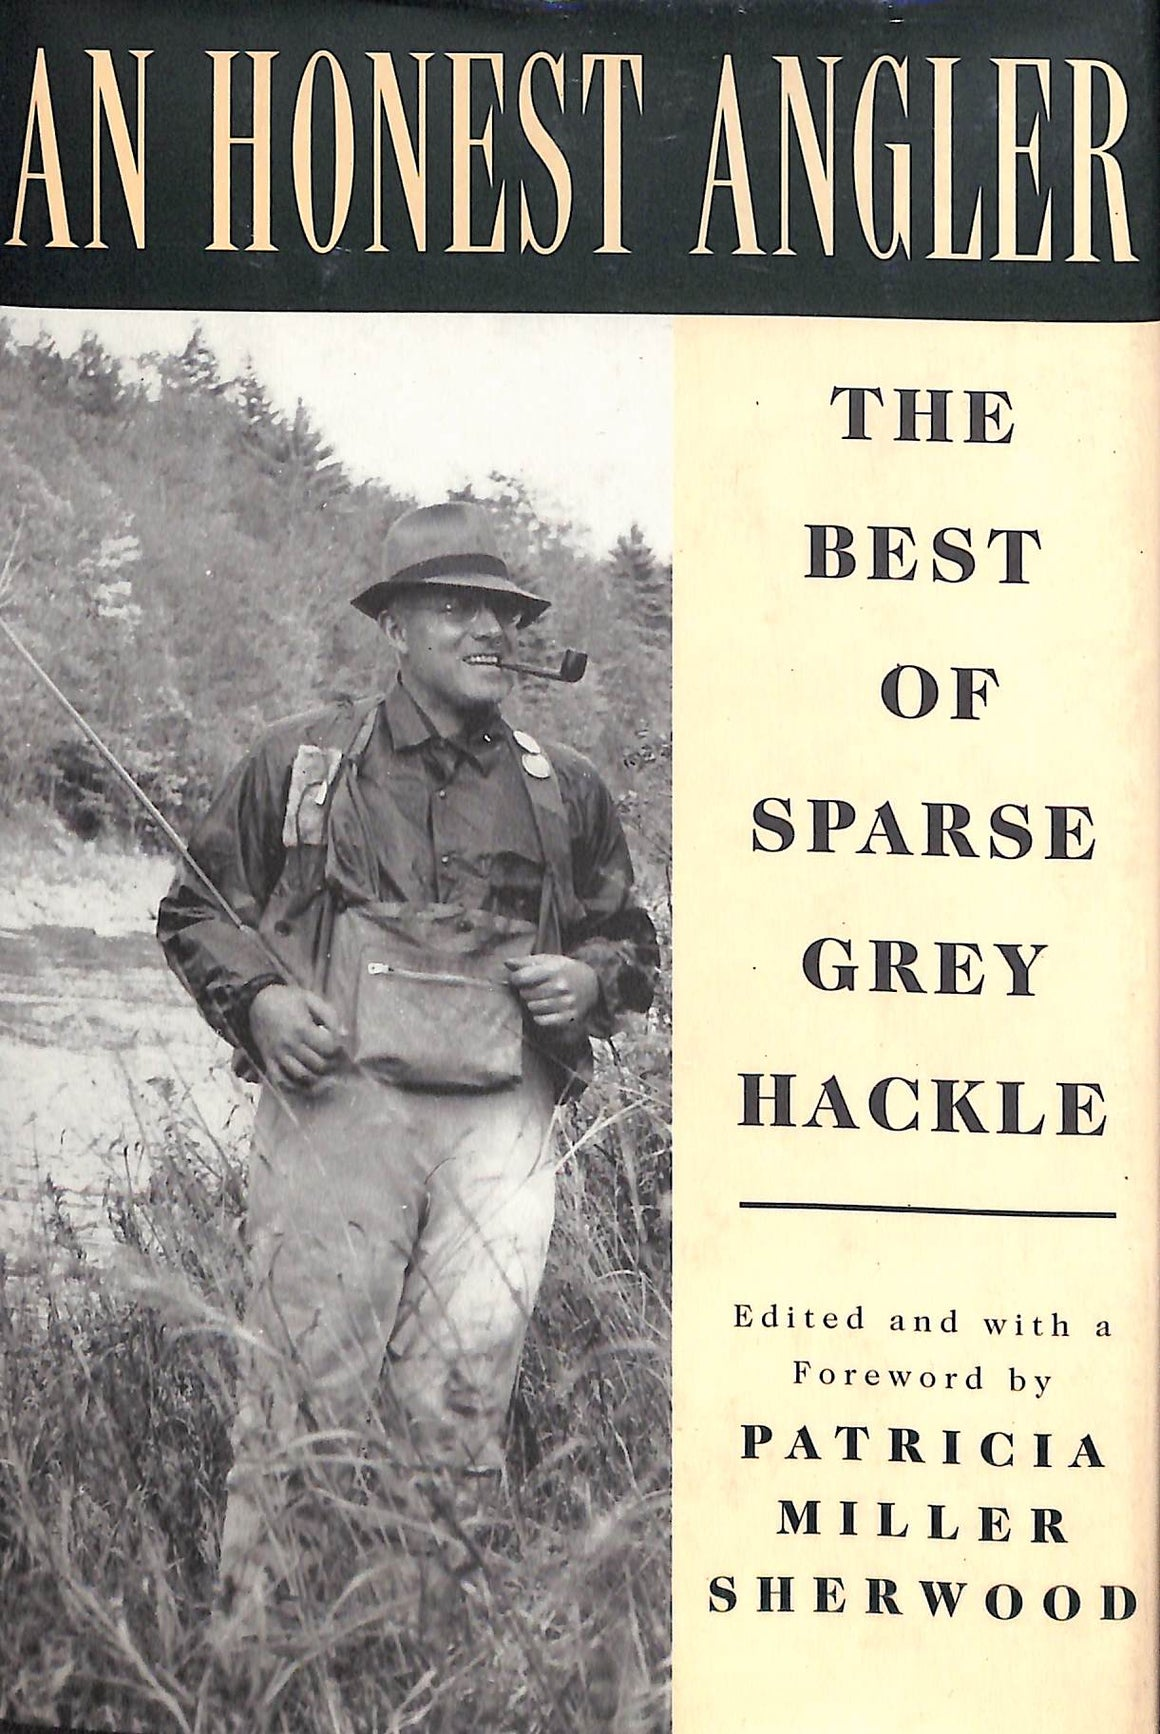 An Honest Angler: The Best of Sparse Grey Hackle